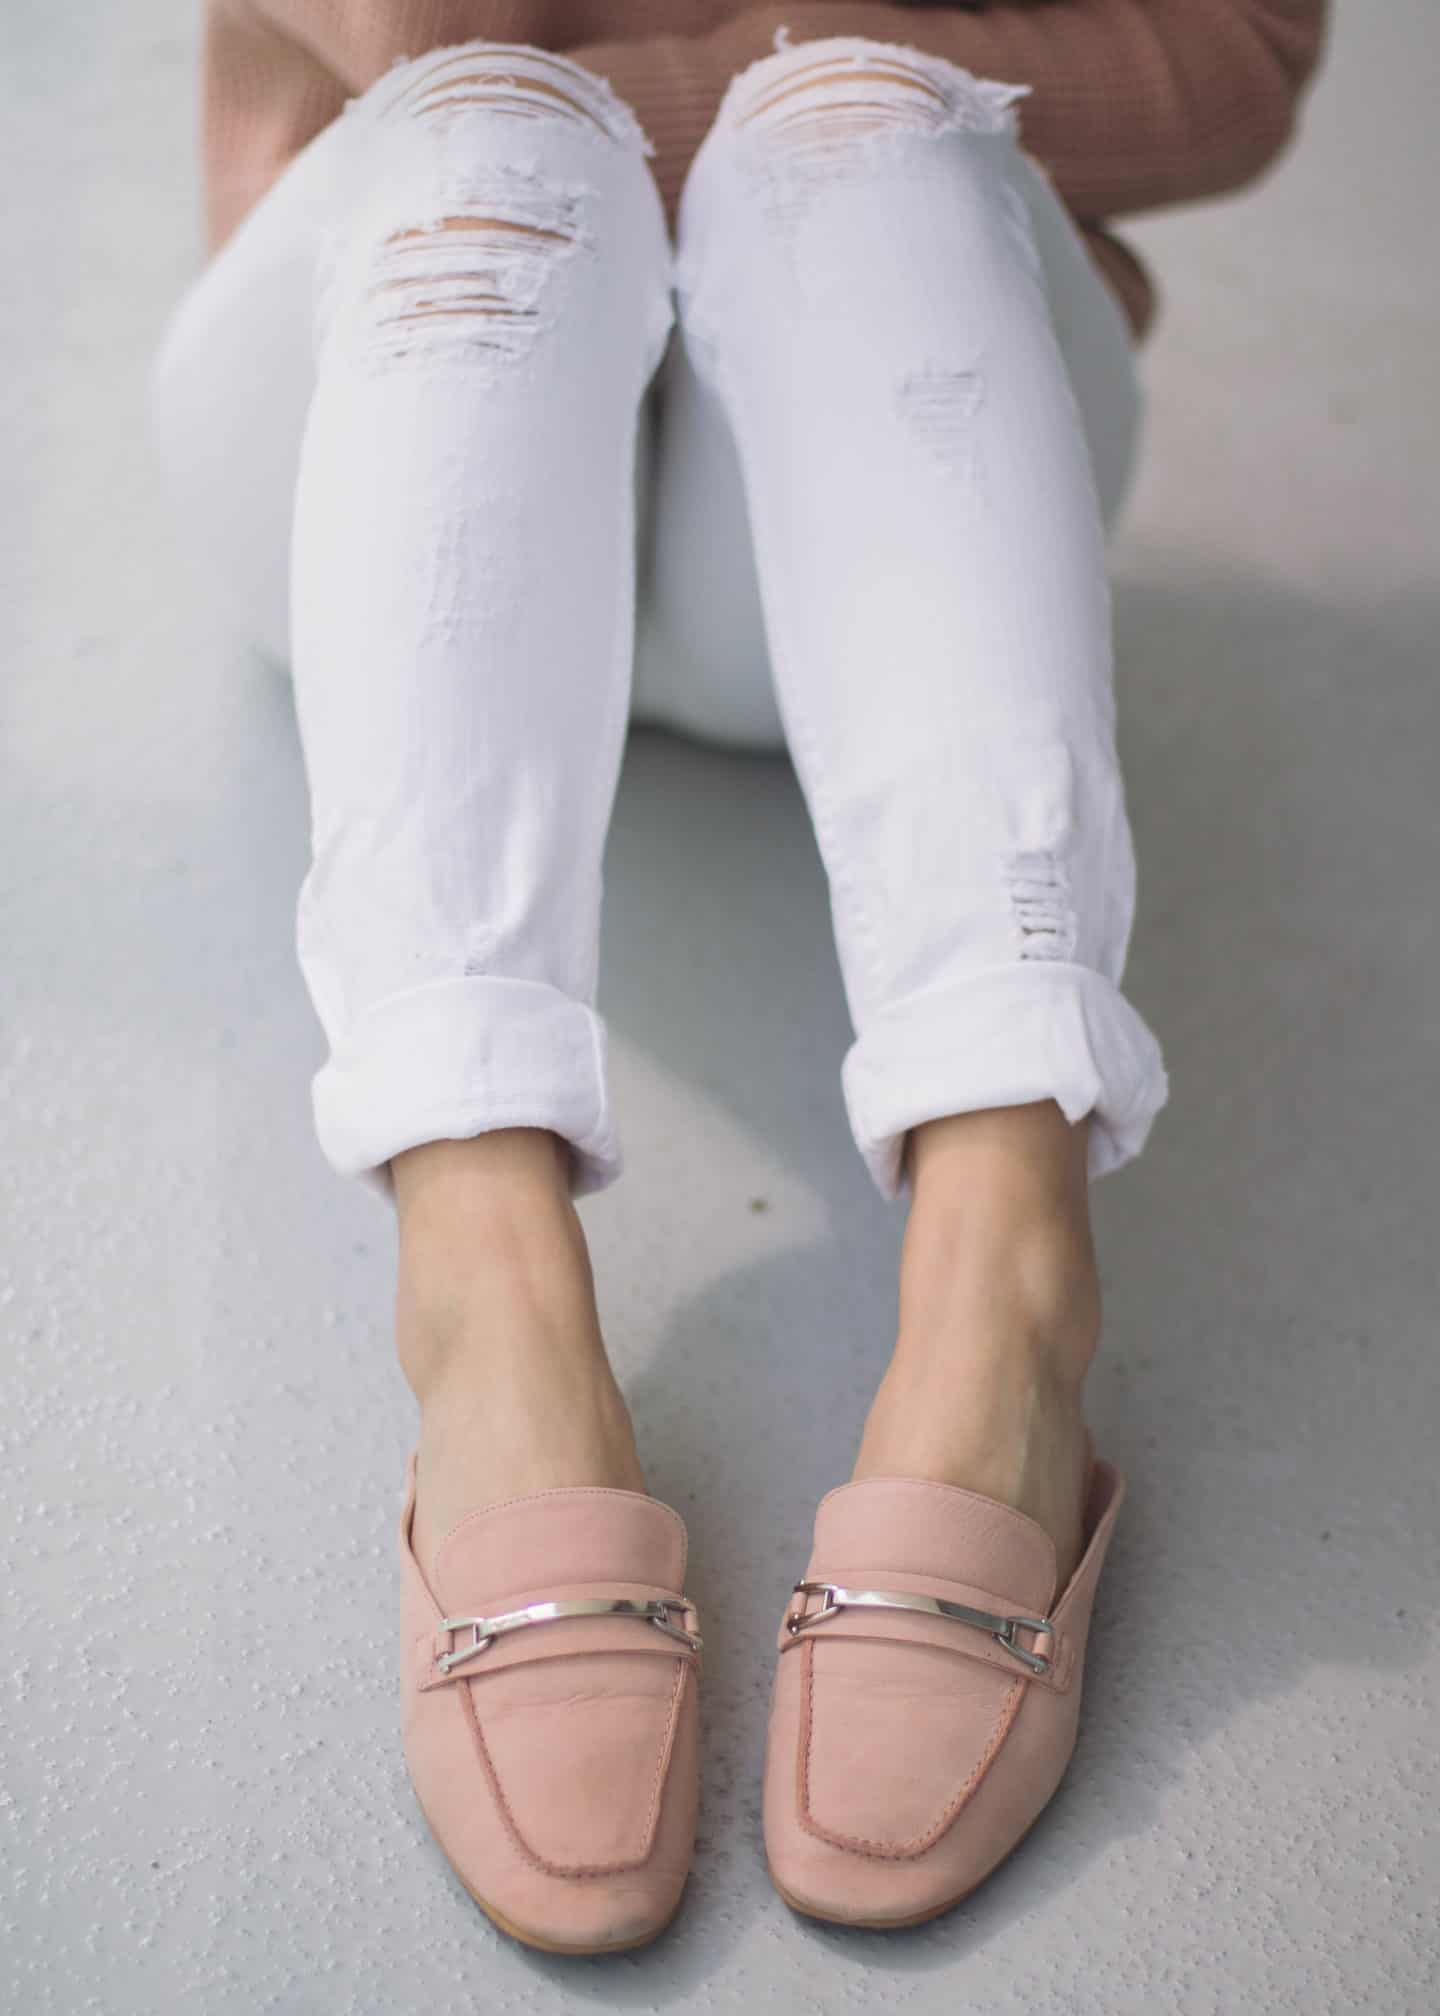 Guess distressed white jeans with Nordstrom pink mules